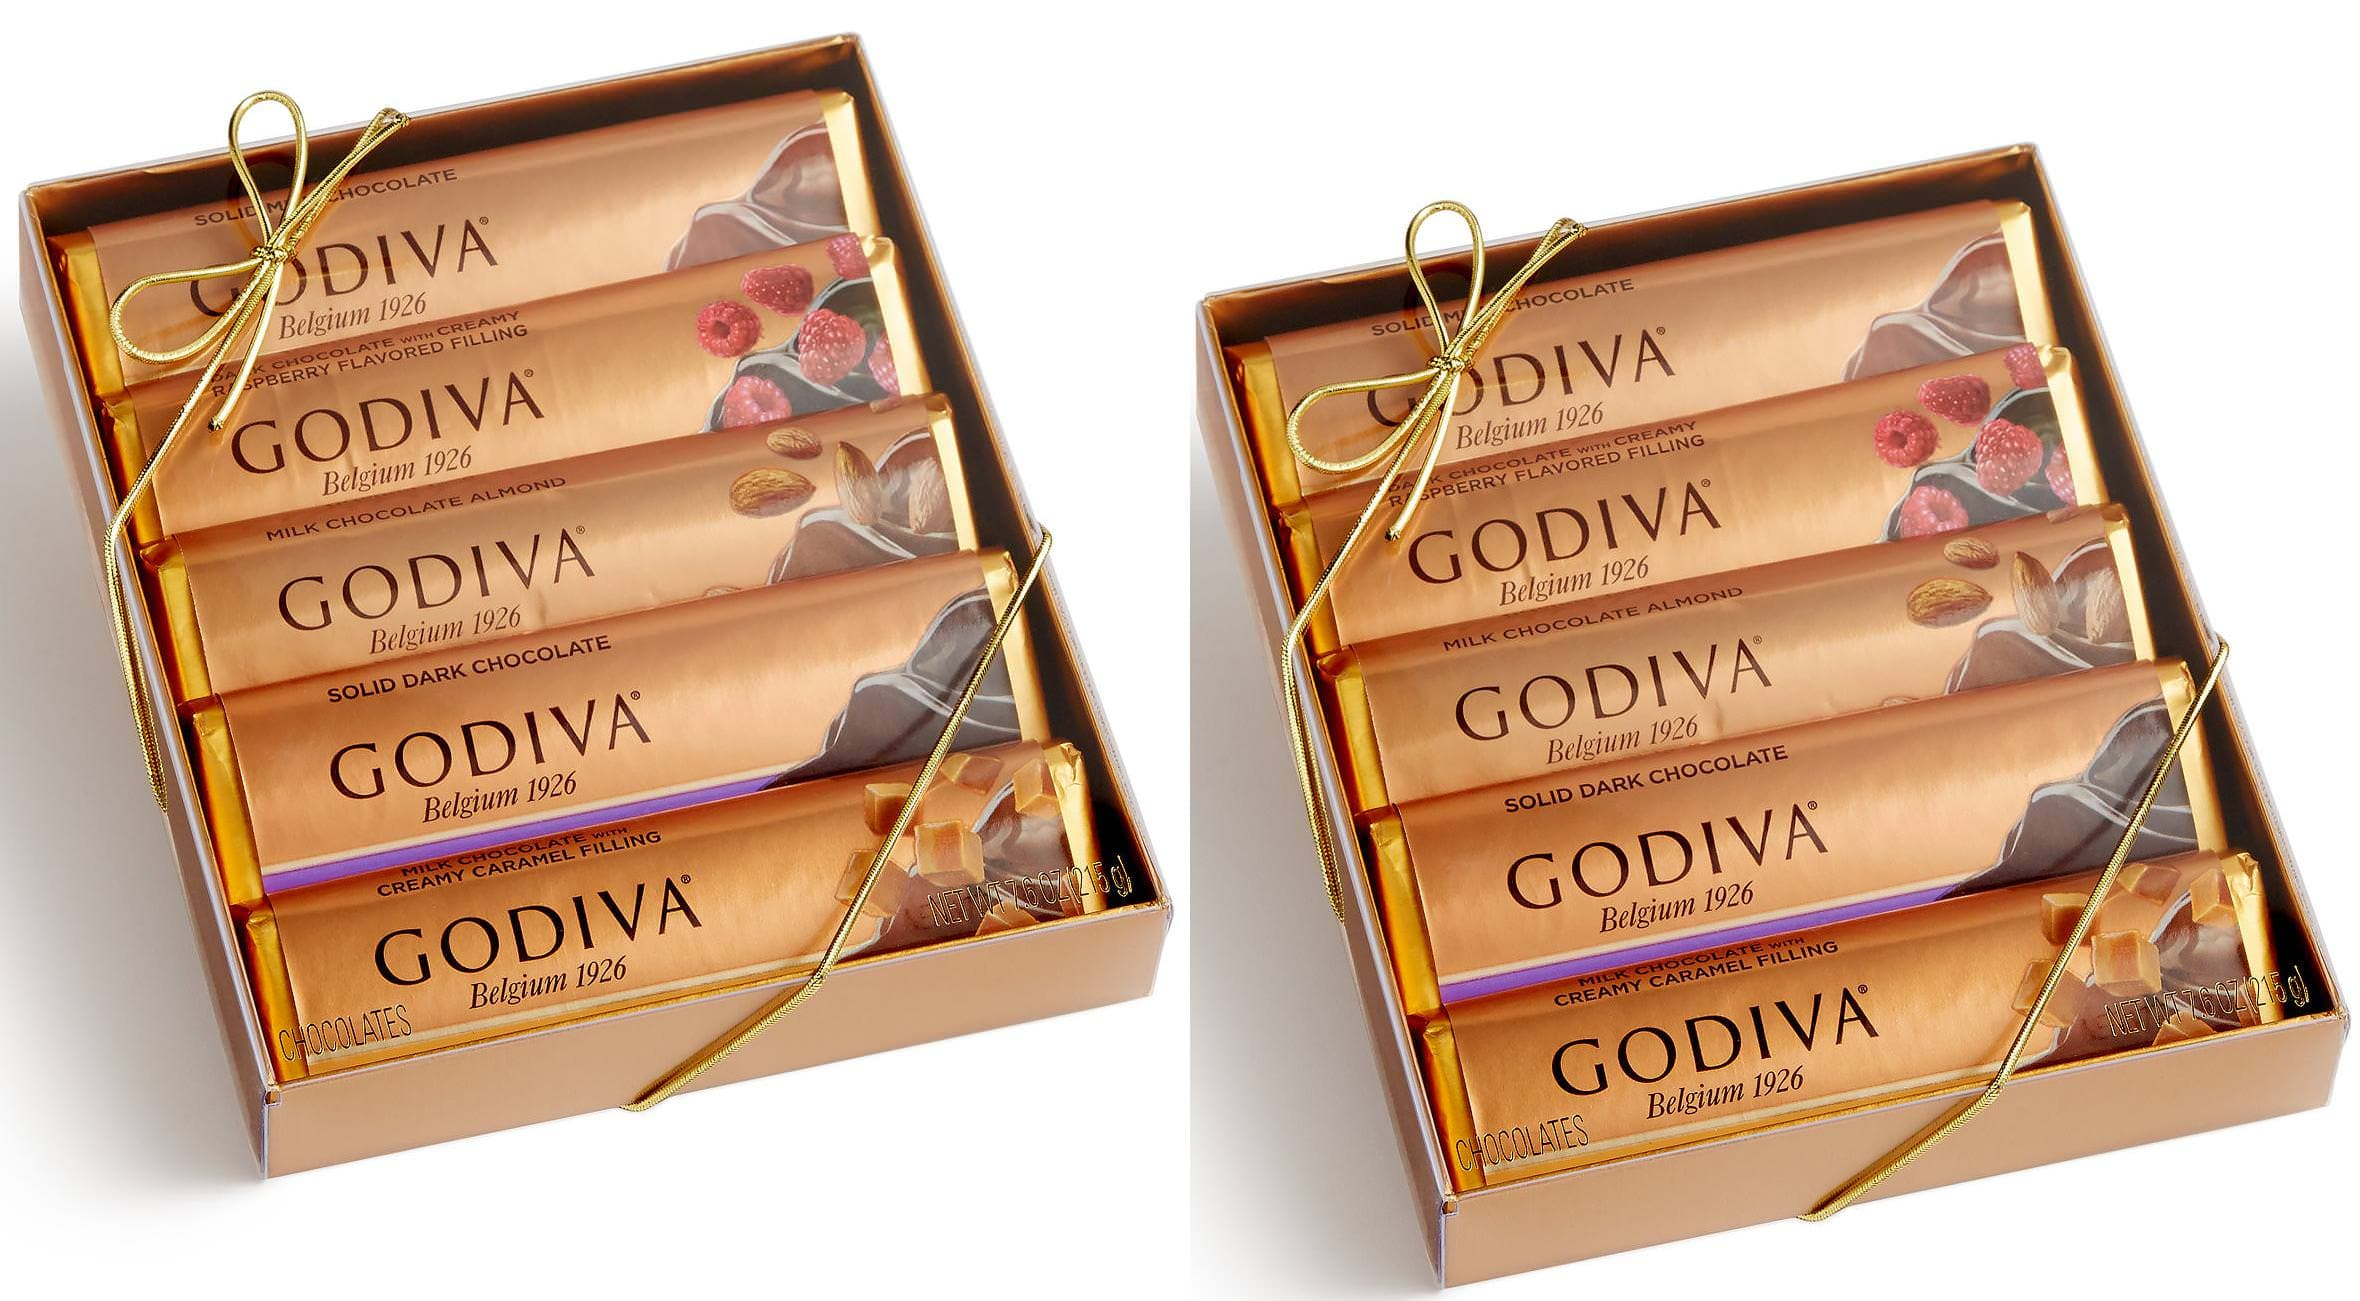 Godiva 10-Bars of Chocolate (Two 5-Bar Gift Sets) for $15.98 at Macy's (pick up in store or FS w/ beauty item)